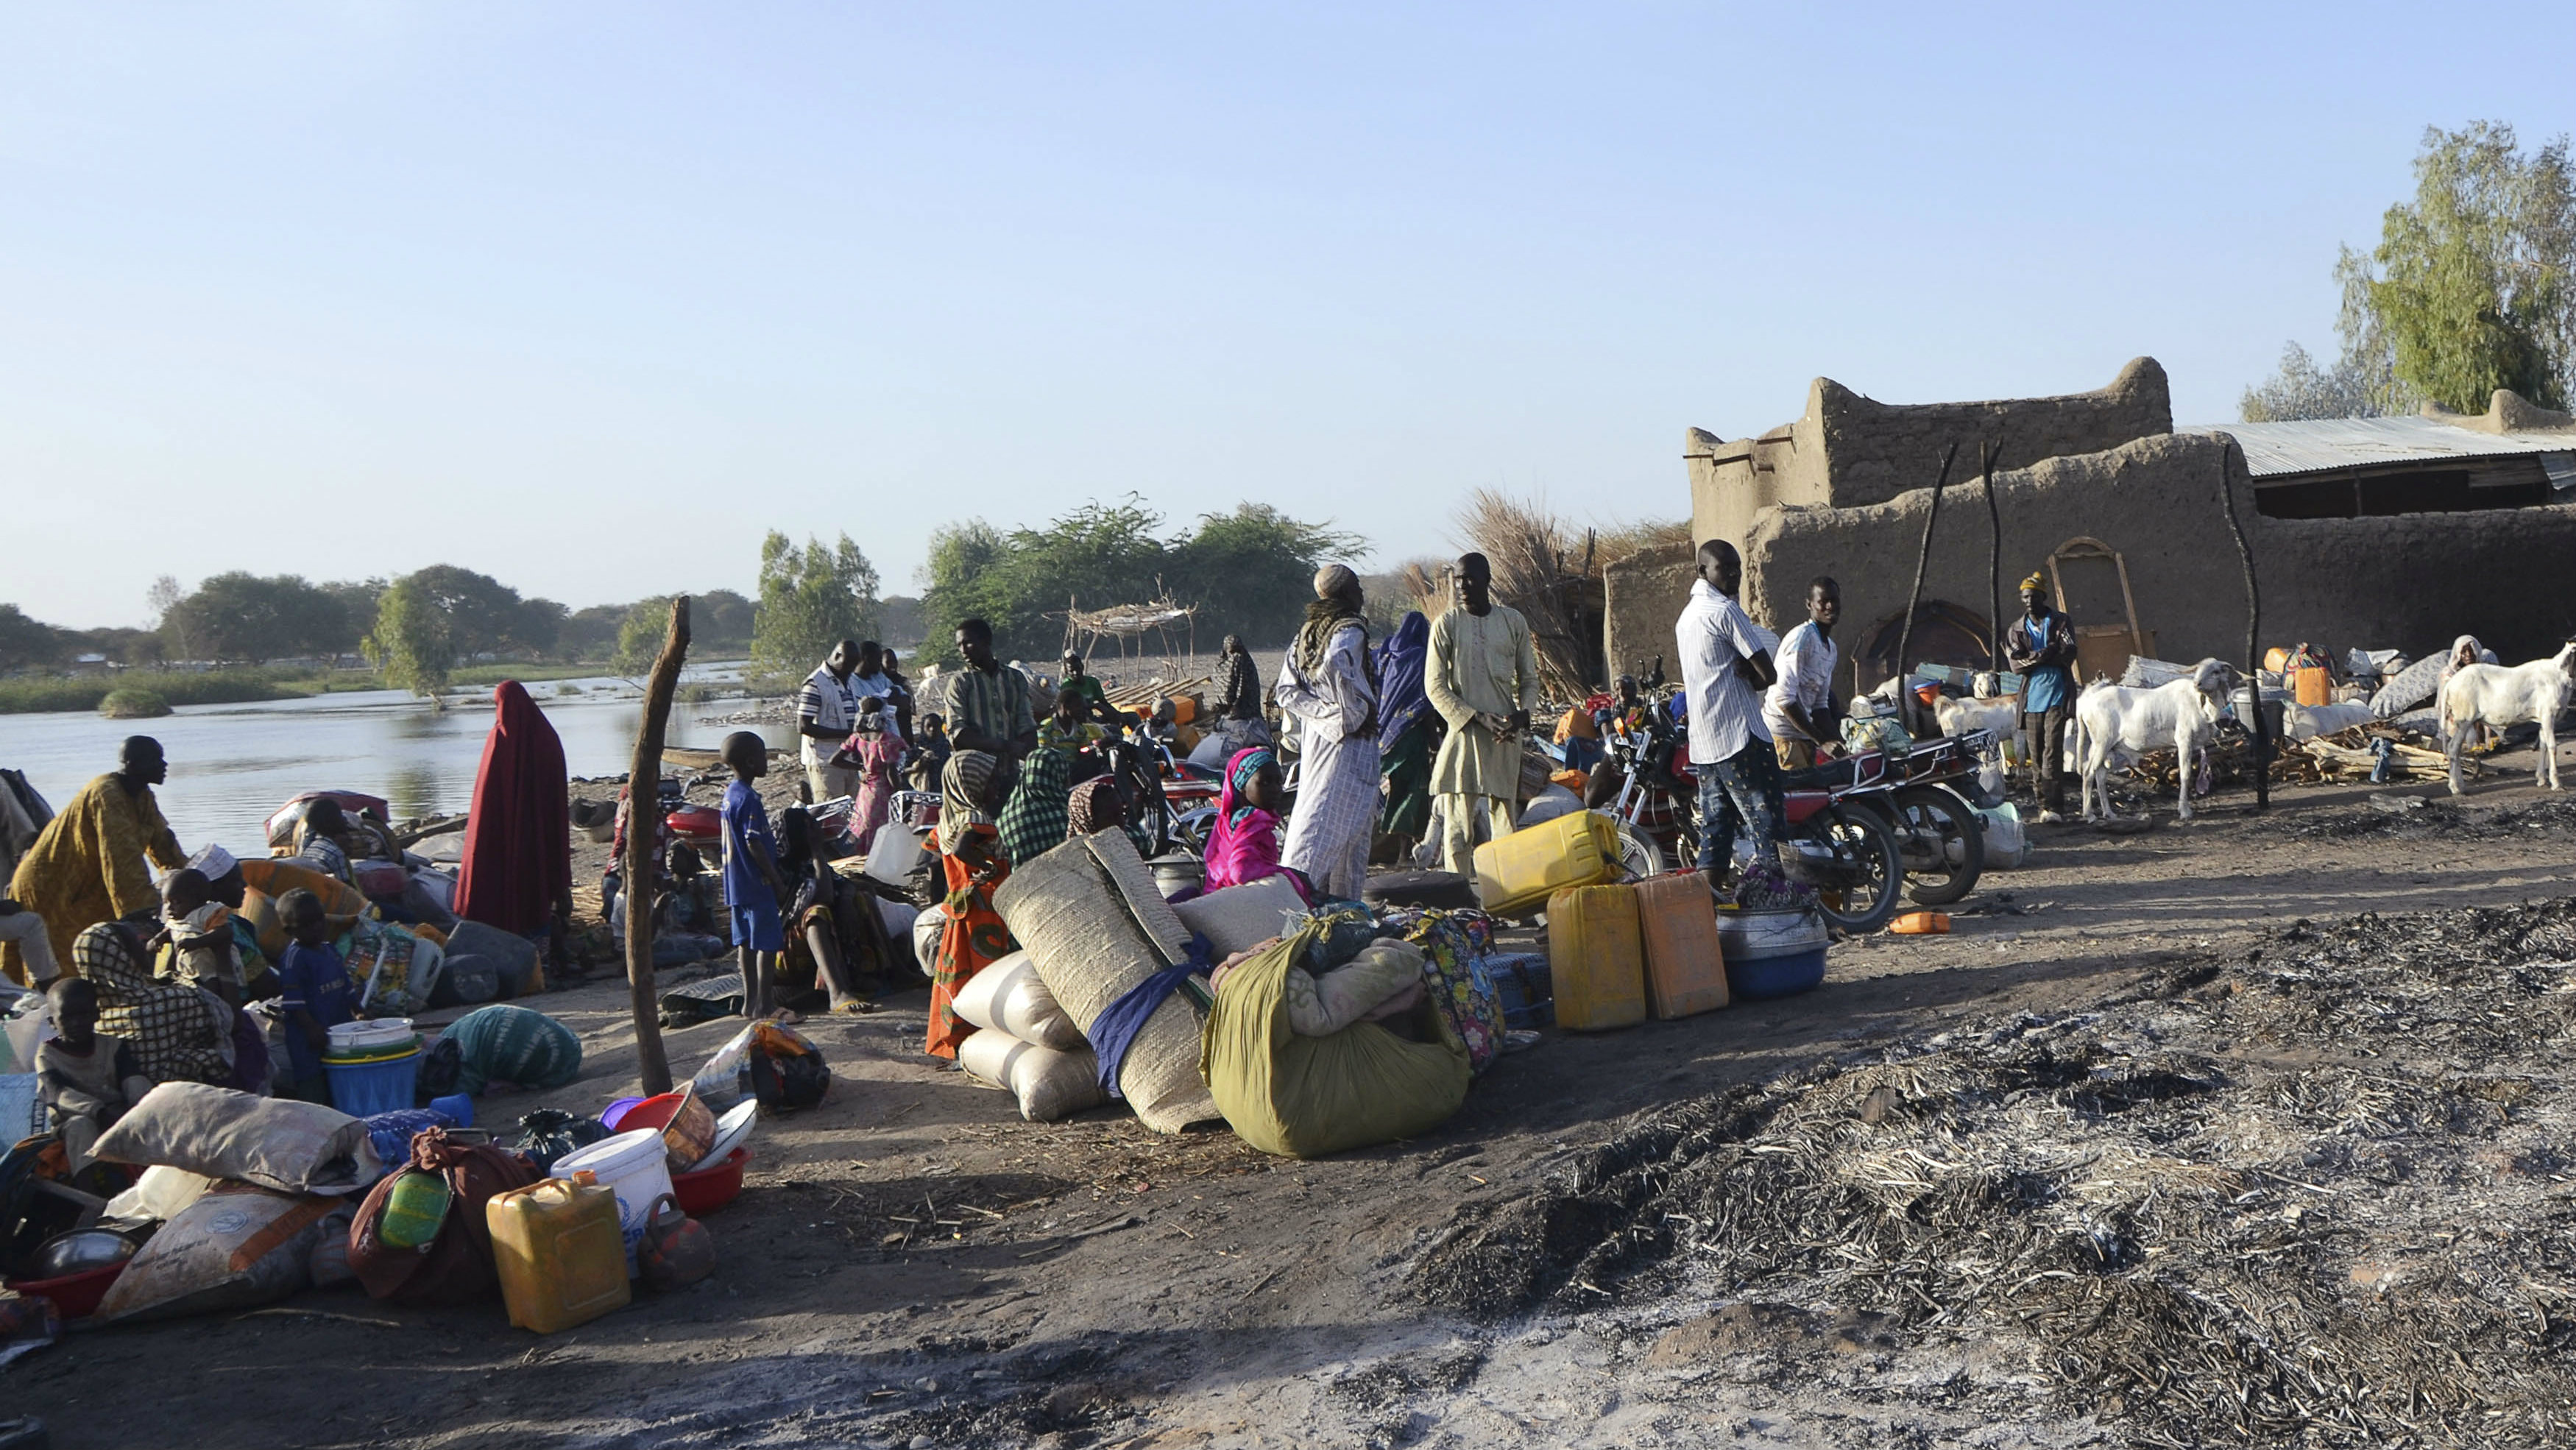 People prepare to flee the village of Ngouboua hours after an attack by Boko Haram militants, February 13, 2015.